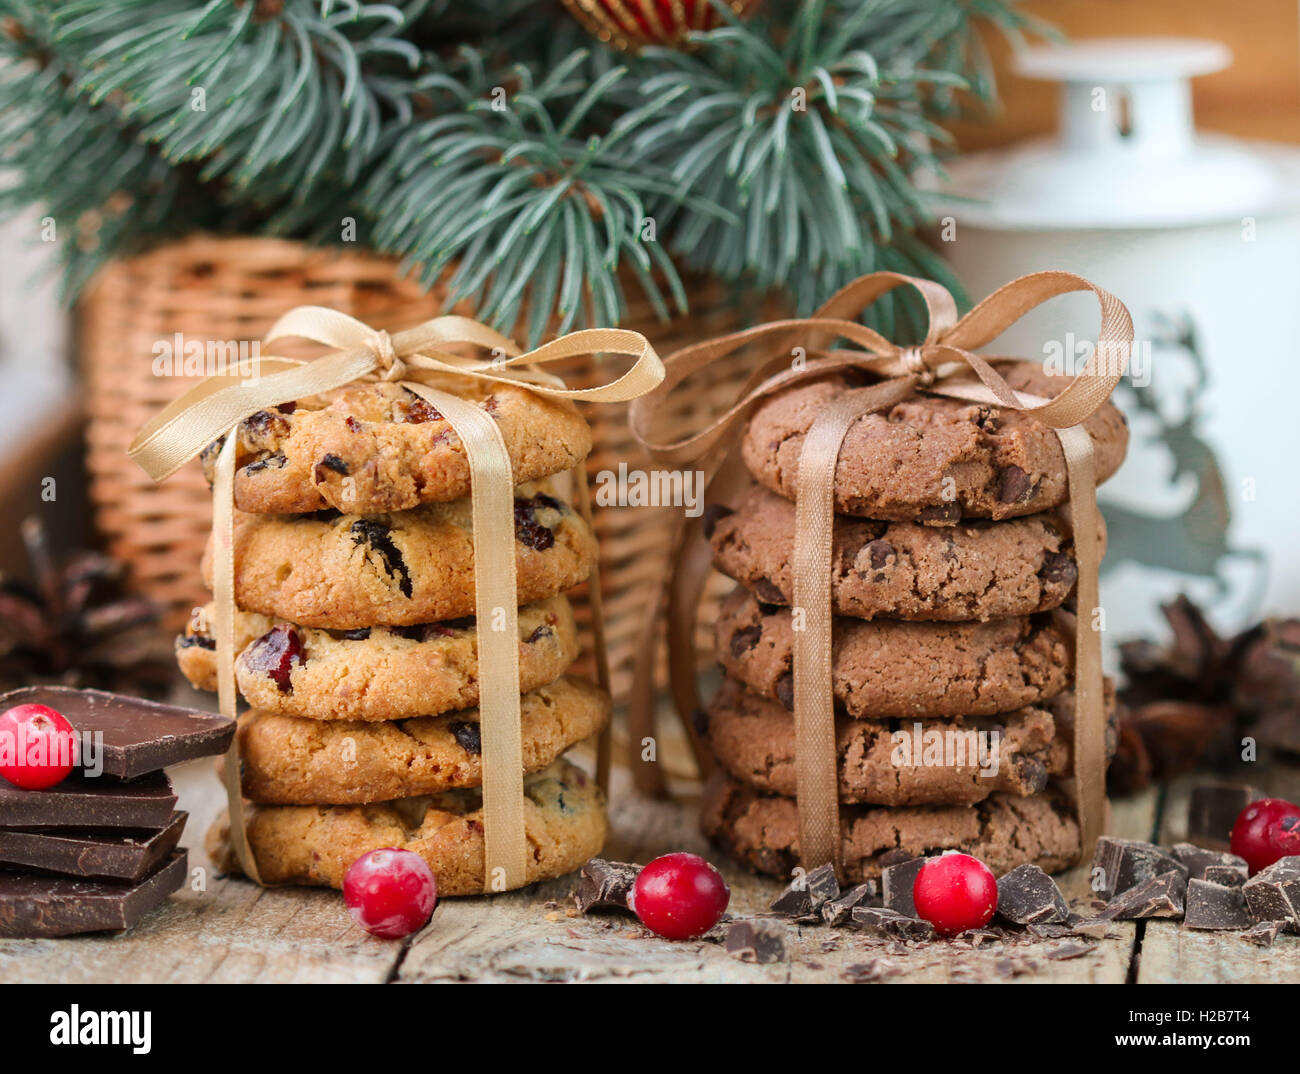 Cookie Gifts Stock Photos & Cookie Gifts Stock Images - Alamy